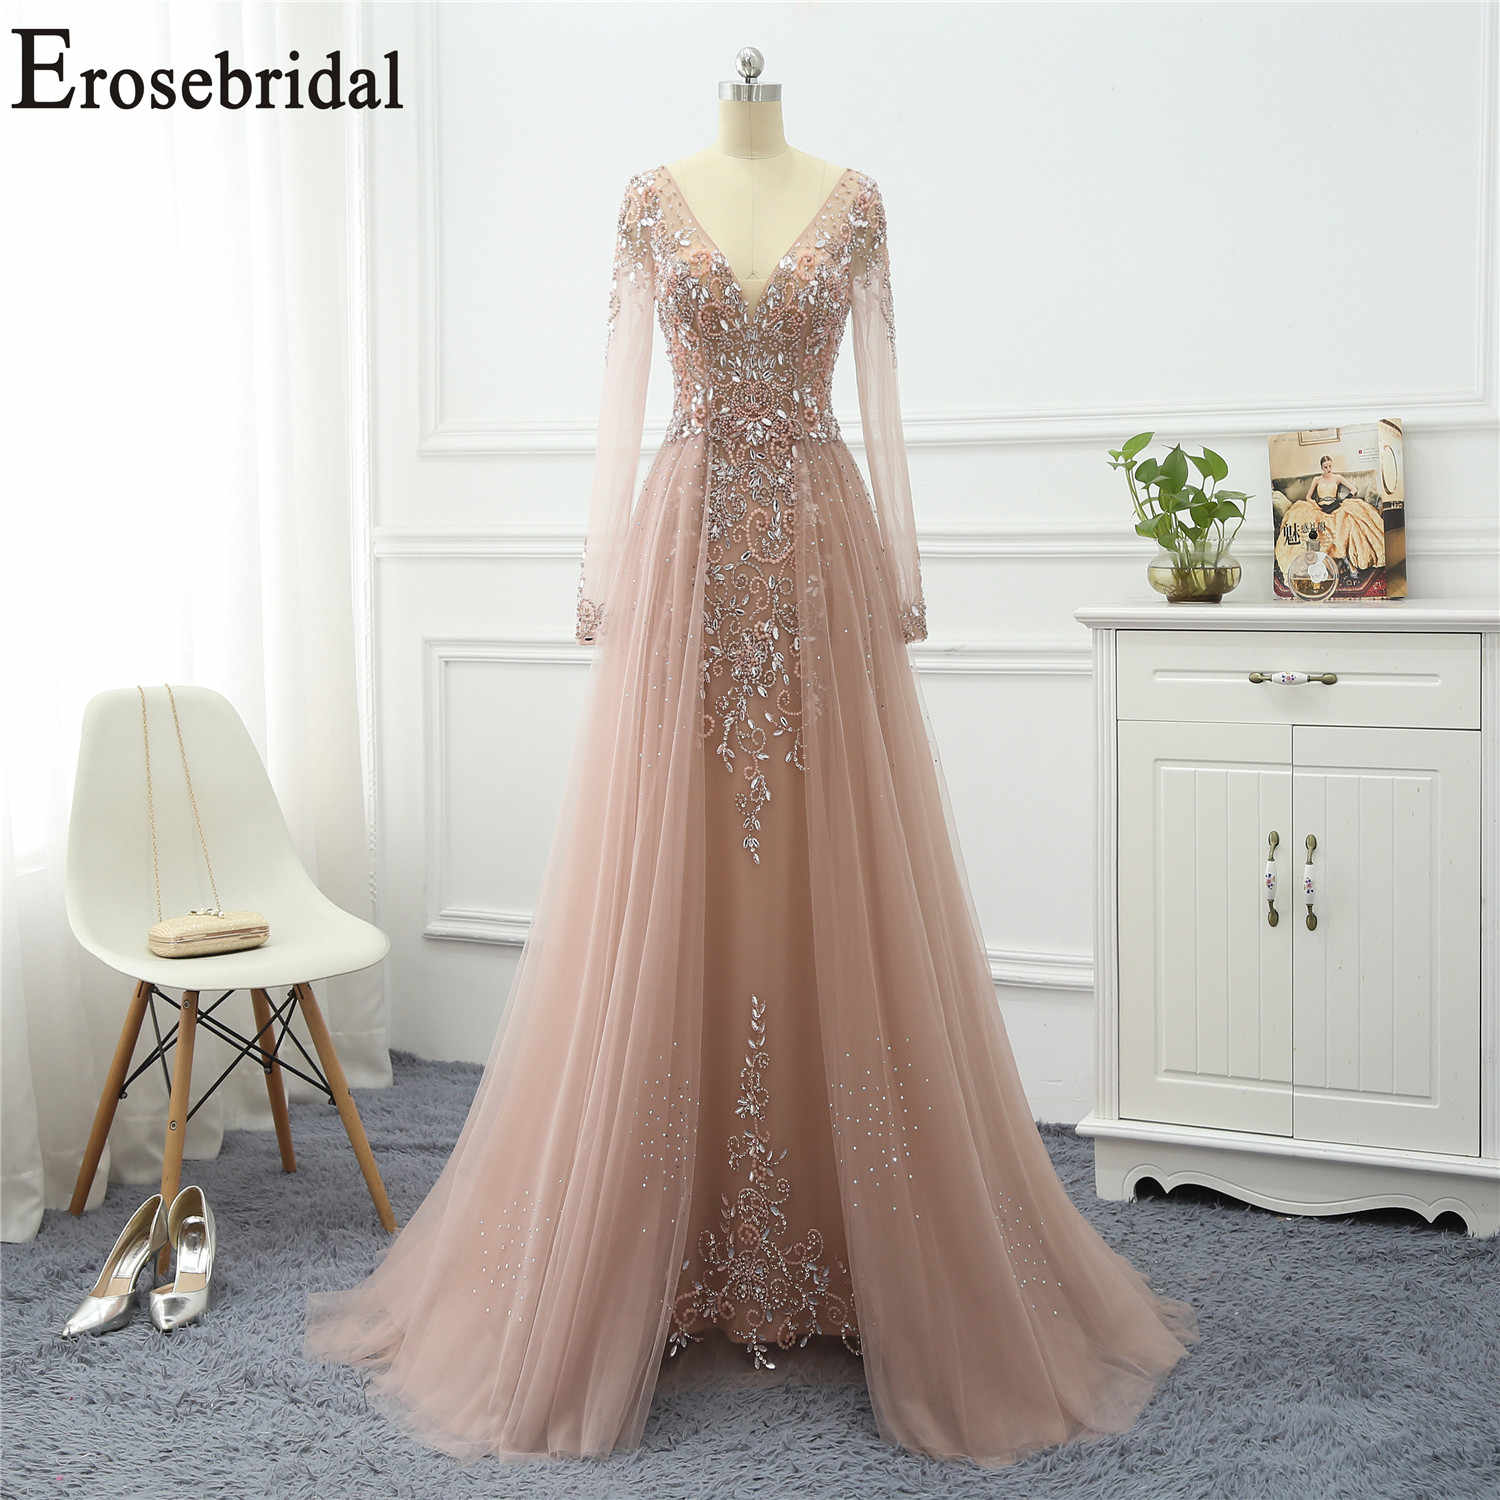 Erosebridal Beaded Elegant Evening Dress Long 2019 Long Sleeve Formal Dresses Evening Gowns for Women with Train